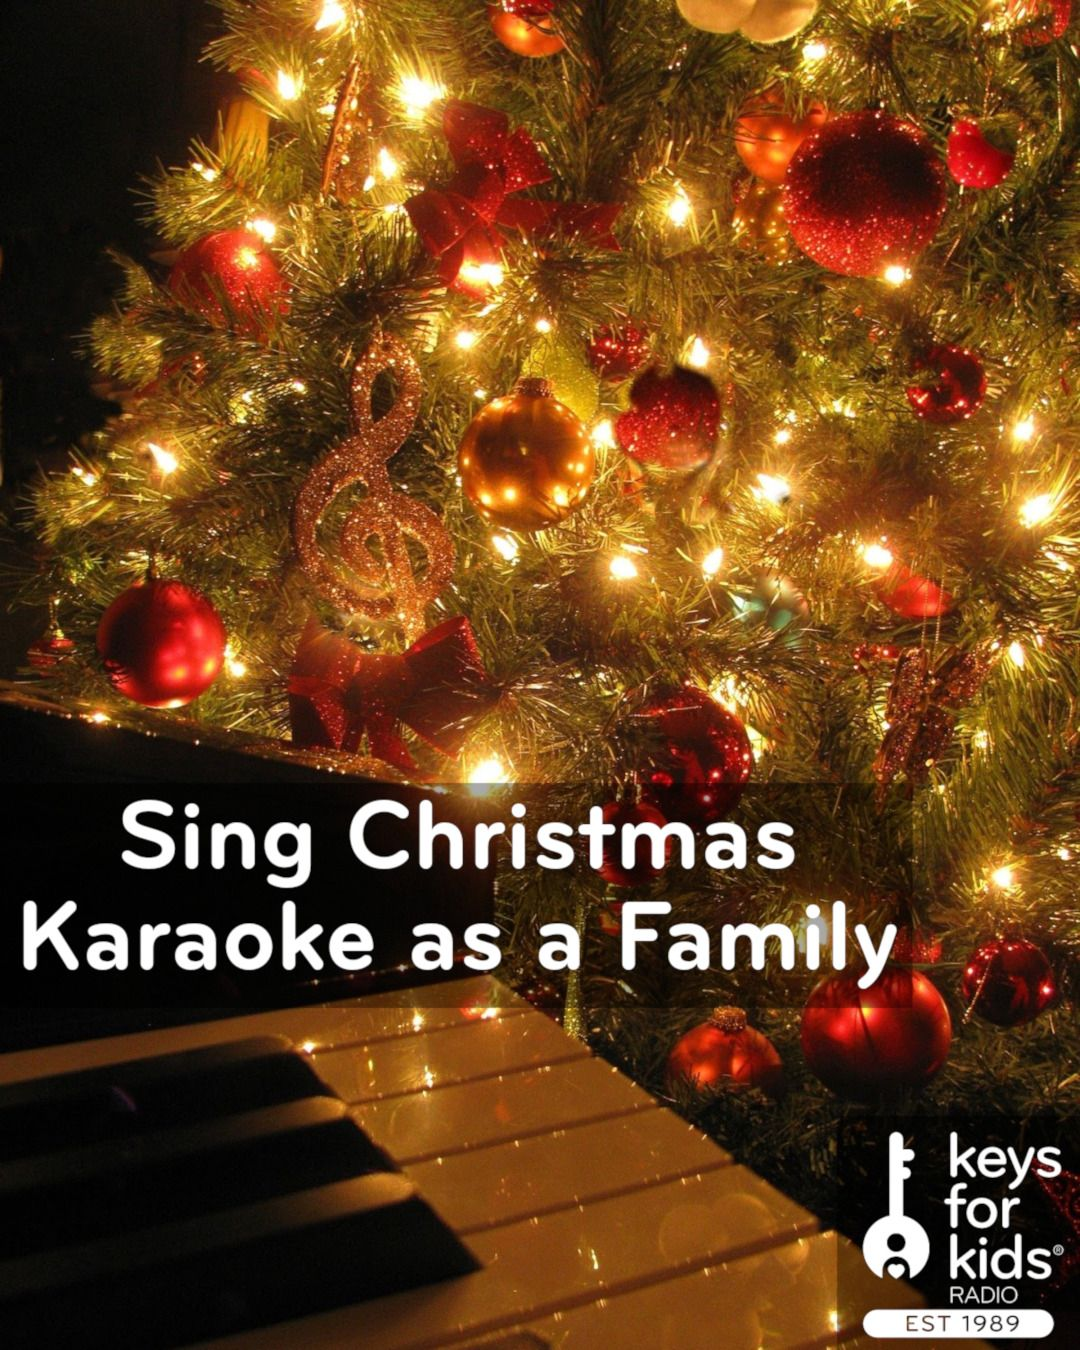 Merry Christmas Singing Drama For Kids Christmas Playlist Merry Christmas